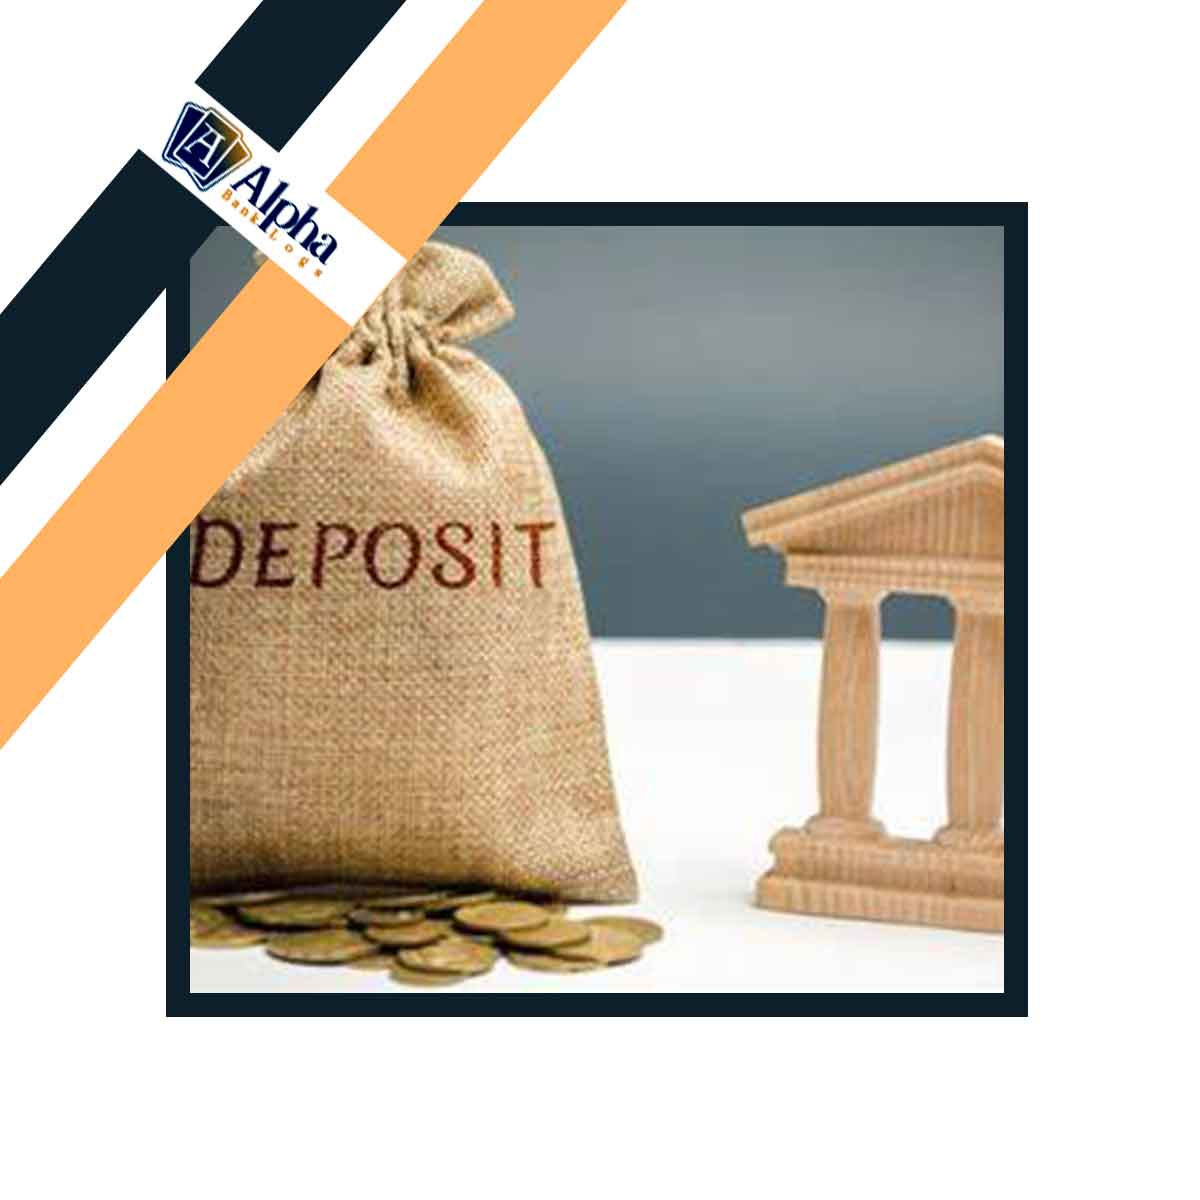 BANK DROP with INITIAL 100 USD DEPOSIT.